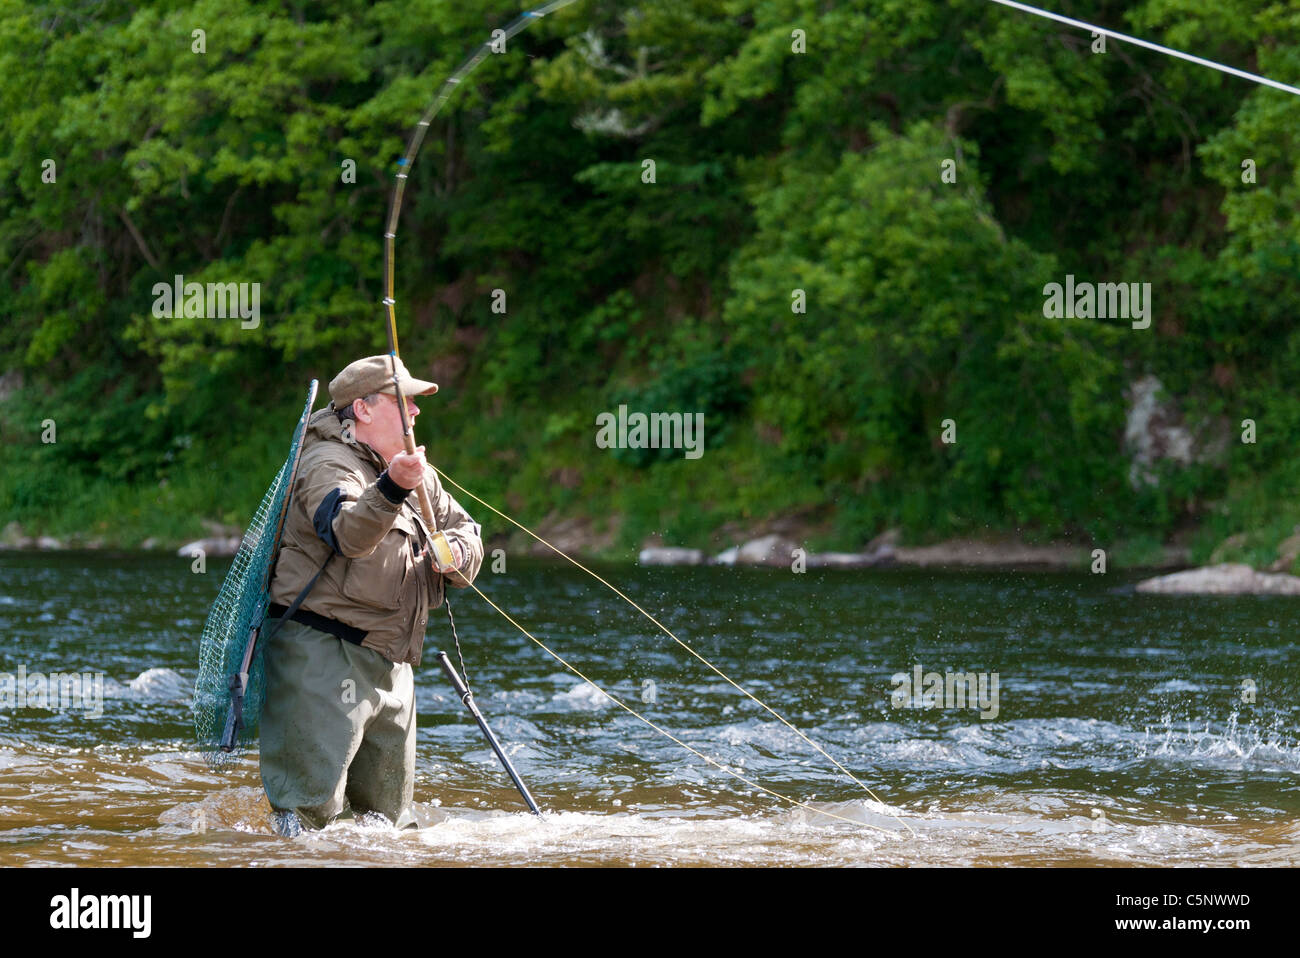 Fisherman fly fishing for salmon on River Tweed, Scottish Borders, Scotland - Stock Image